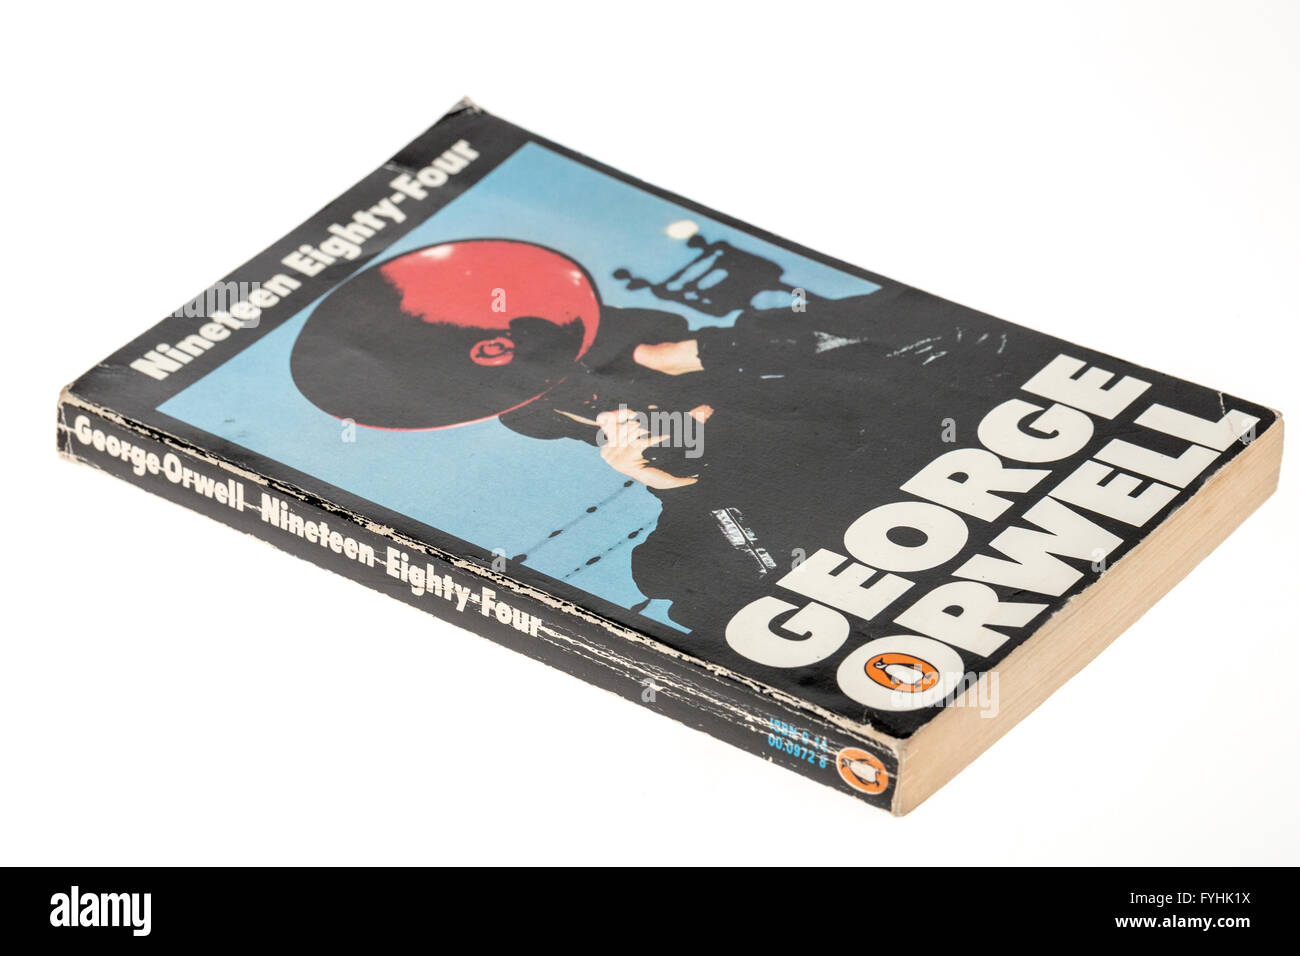 George Orwell Nineteen Eighty Four paperback book published by Penguin - Stock Image